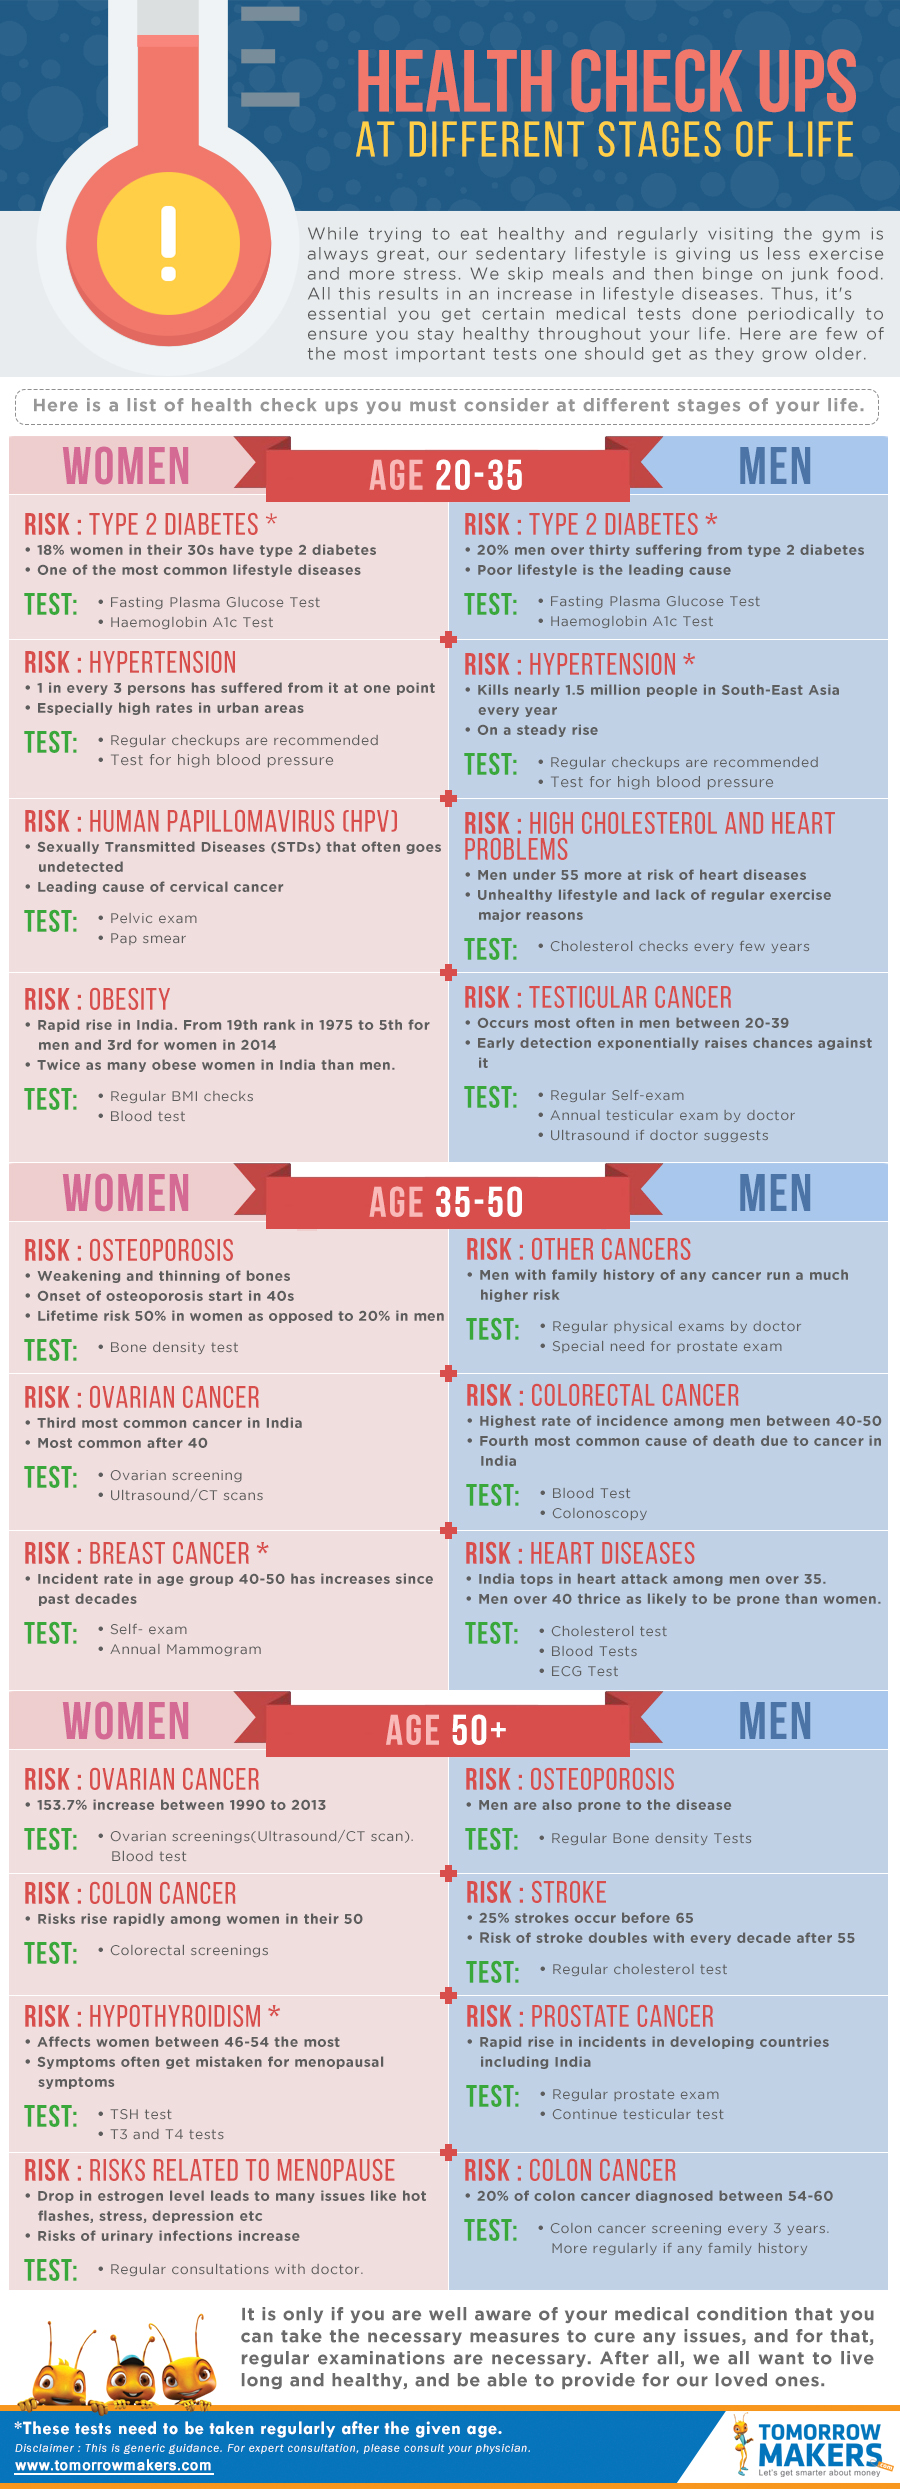 health-check-ups-at-different-stages